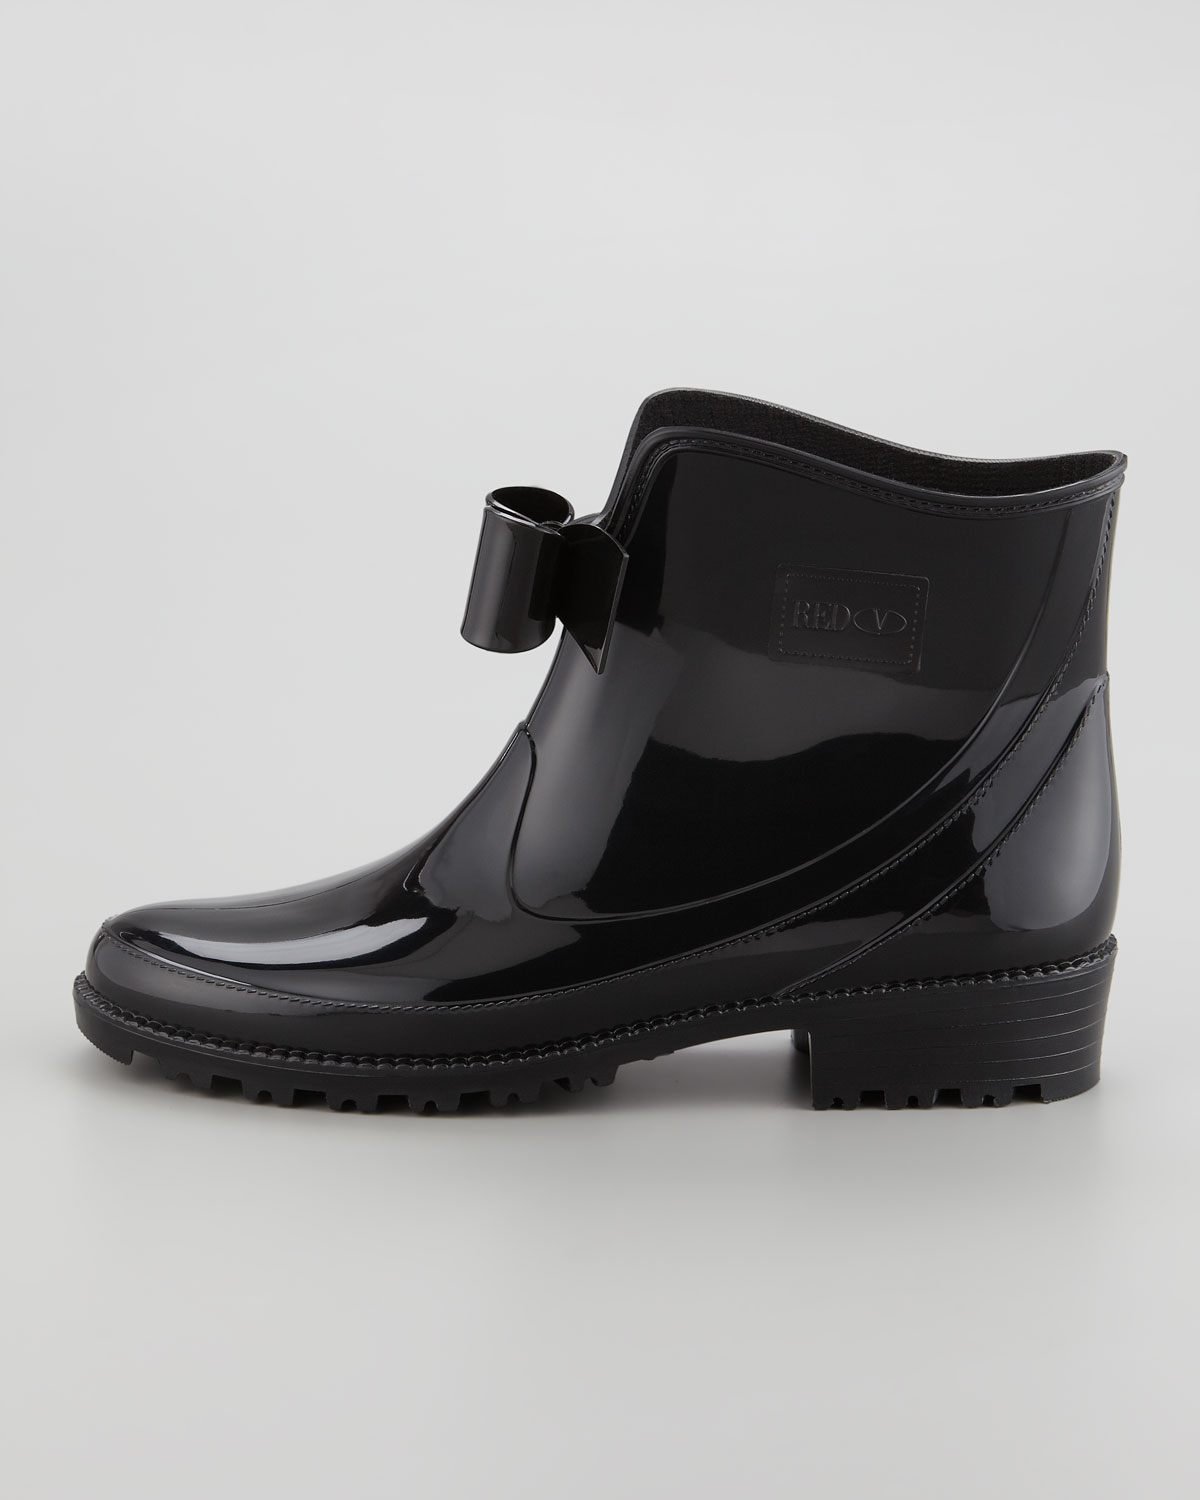 Red valentino Short Rain Boot with Bow in Black | Lyst